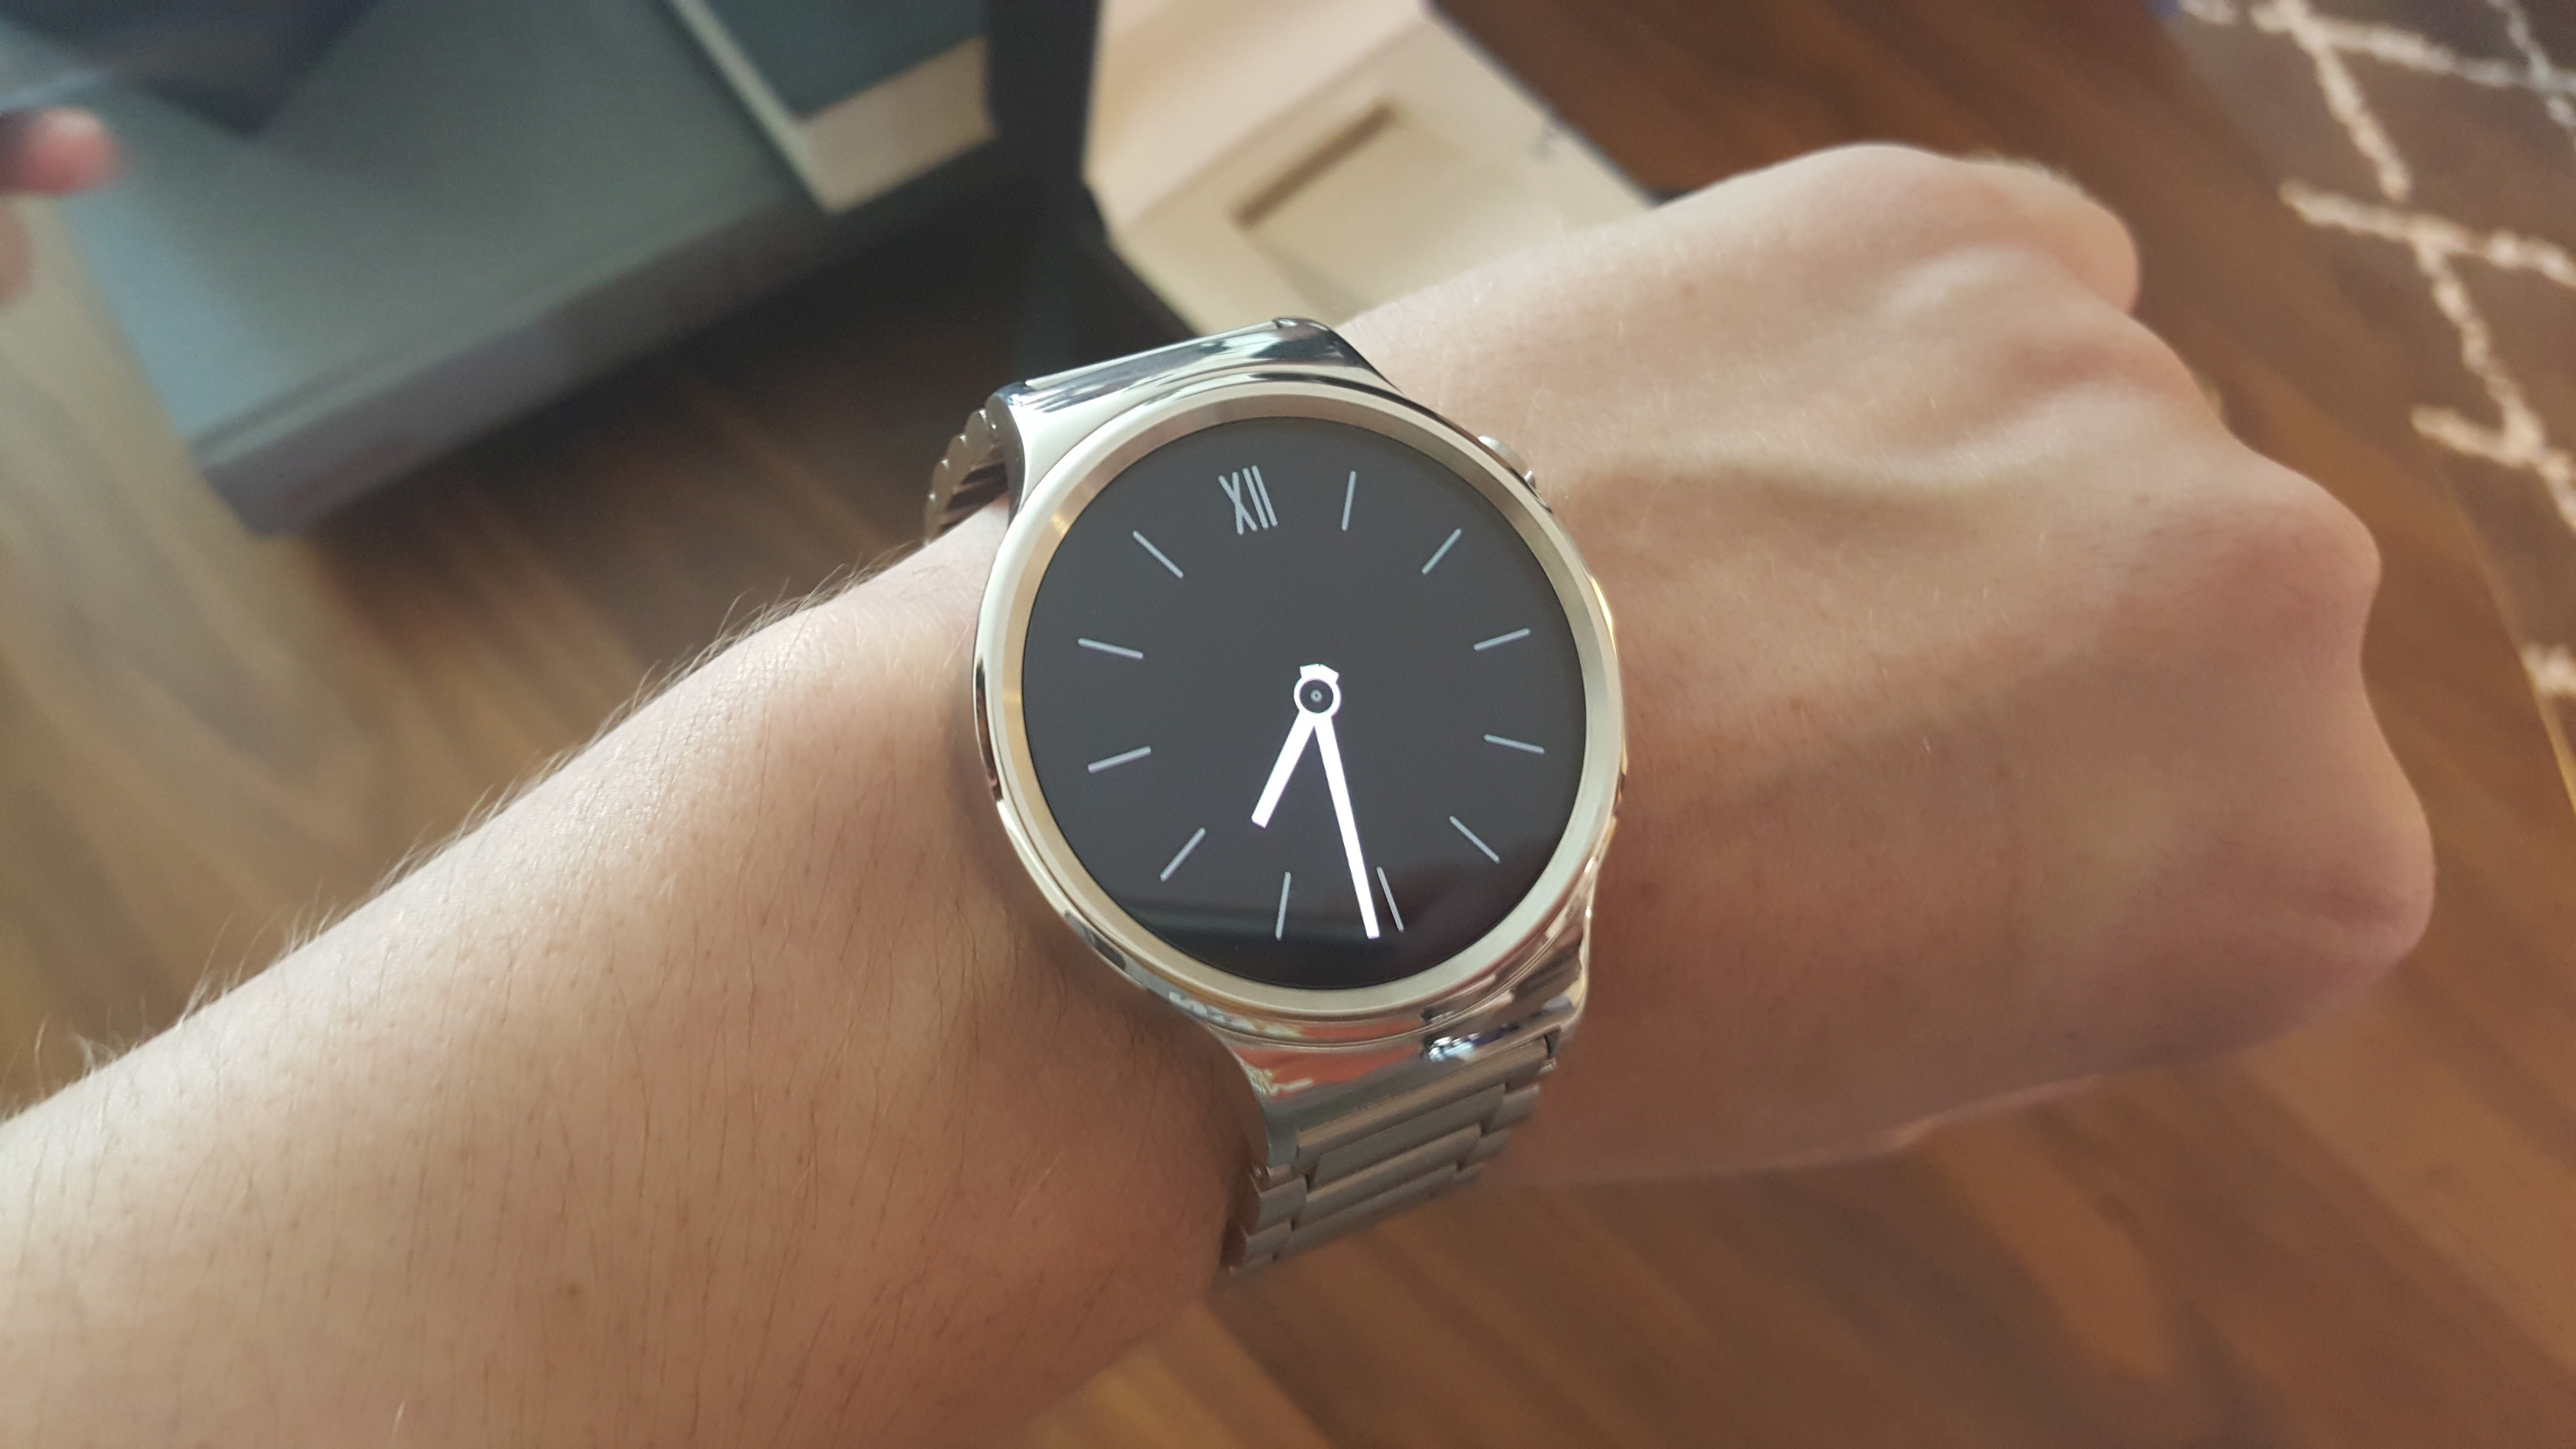 Huawei Watch Hands On Gorgeous Luxury Class Thats A Bit Too Bulky Smart Black Stainless Steel The Is But